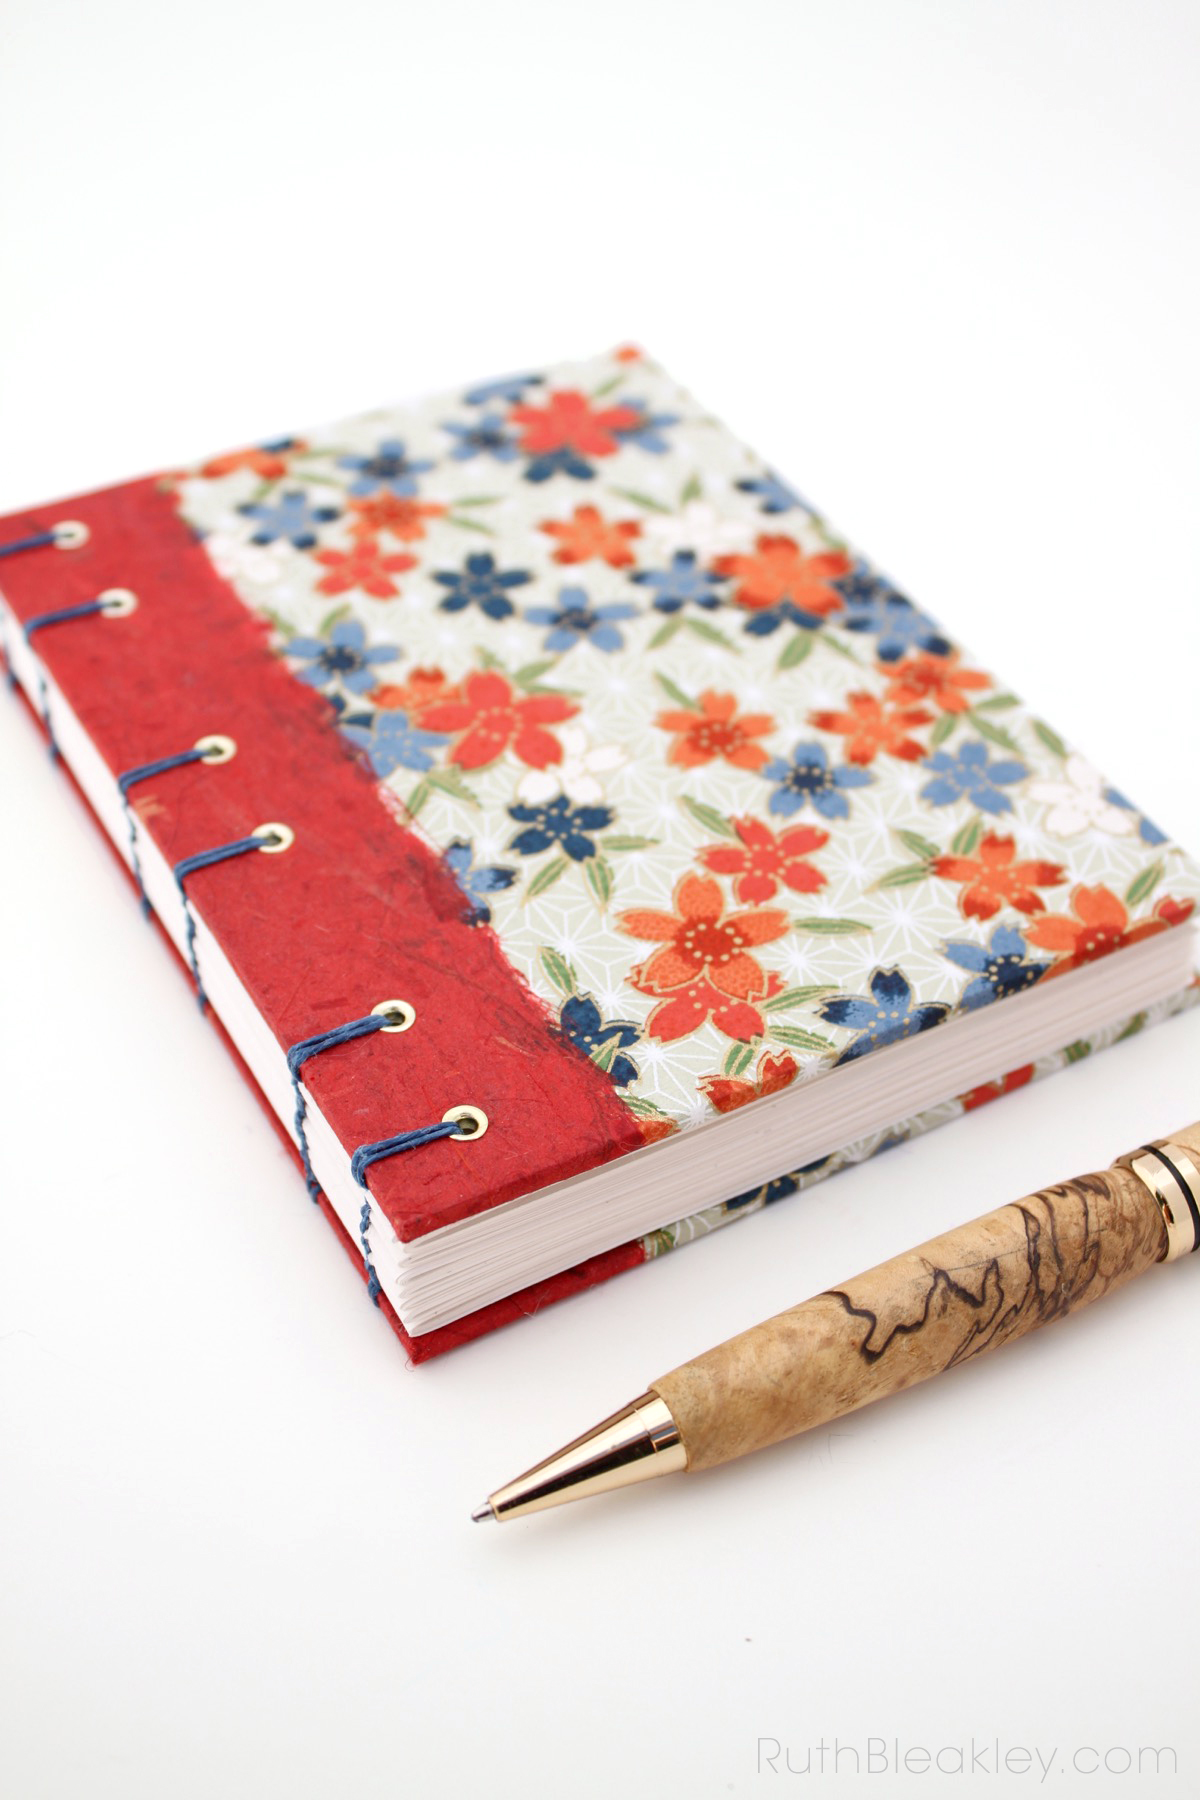 Red Blossoms Journal handmade by Ruth Bleakley - 4